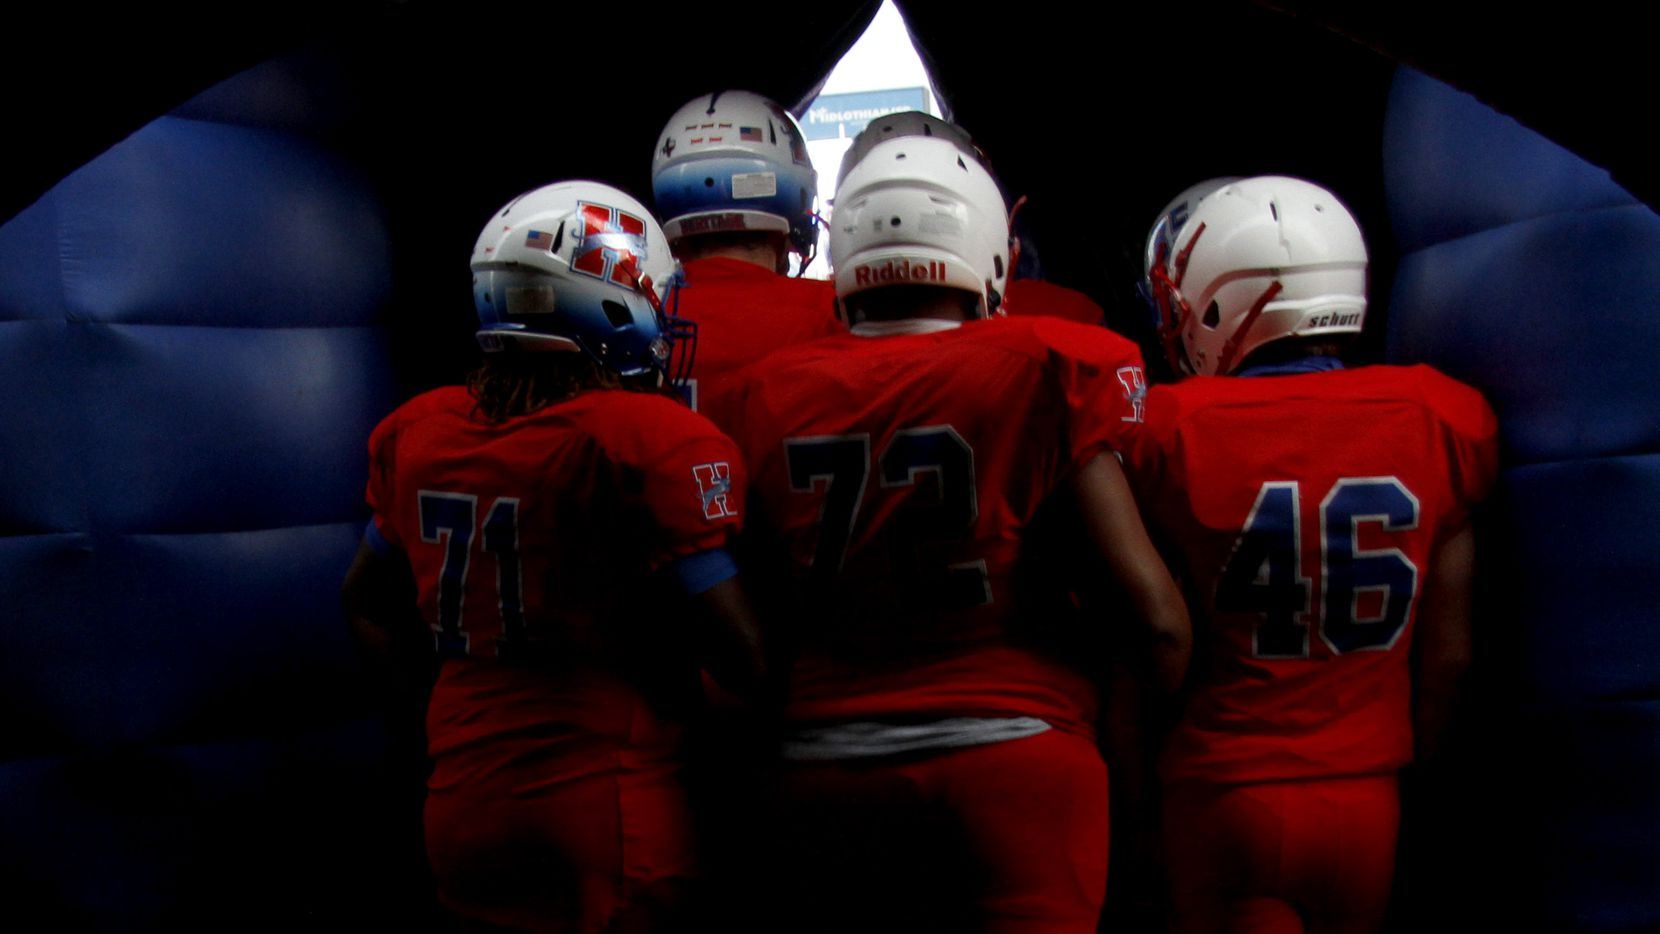 Midlothian Heritage players huddle and peek through an opening of their team inflatable prior to team announcements before the kickoff of their game against Lindale. The two teams played their Class 4A football game at Midlothian ISD Multipurpose Stadium in Midlothian on September 4, 2020.